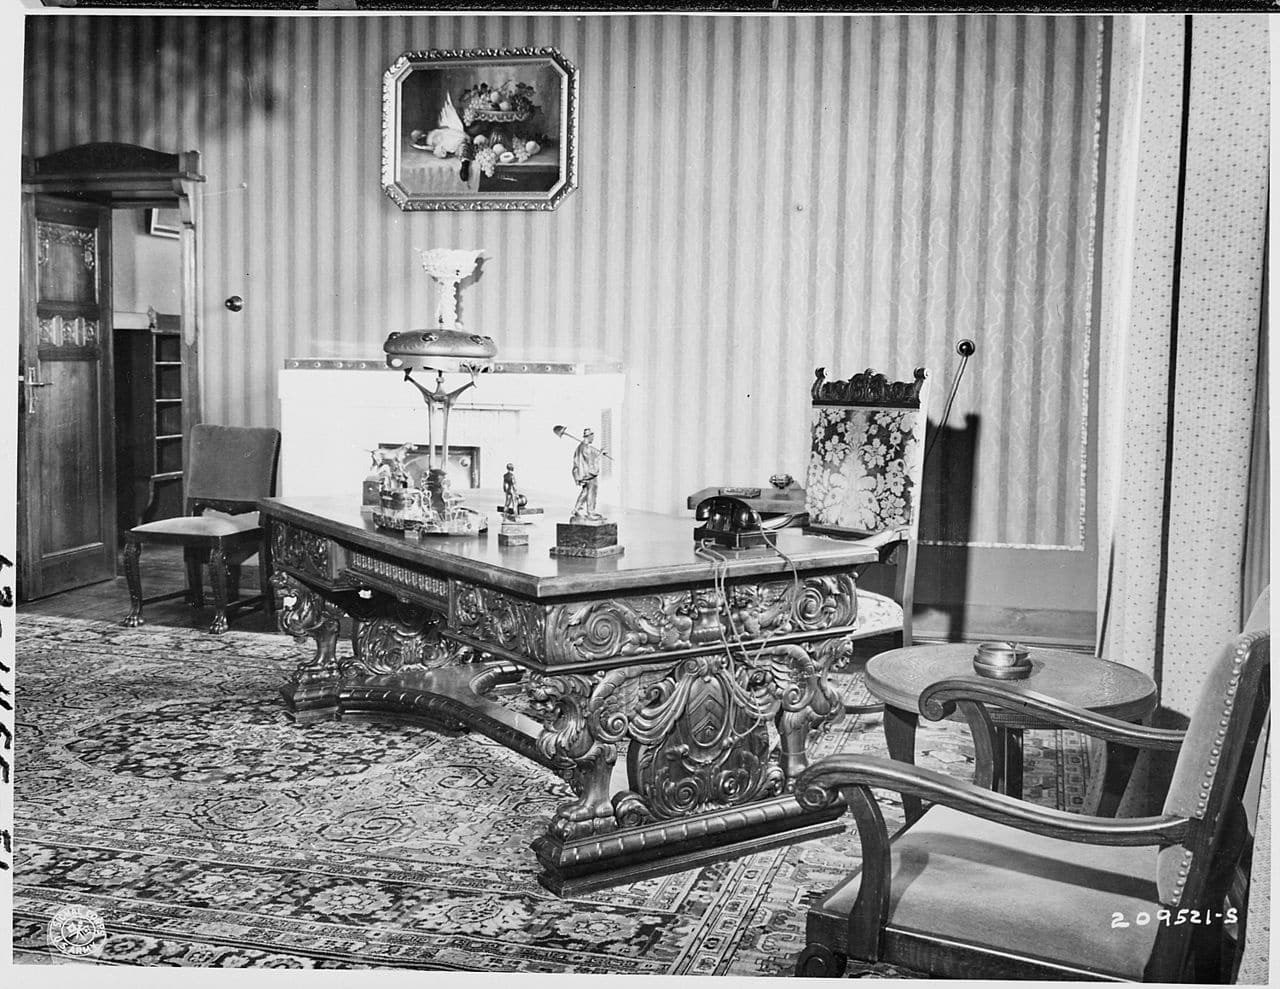 The Potsdam Conference - July 23rd 1945 - A hand carved desk sat in Harry Truman's office in the 'Little White House' during the Potsdam Conference